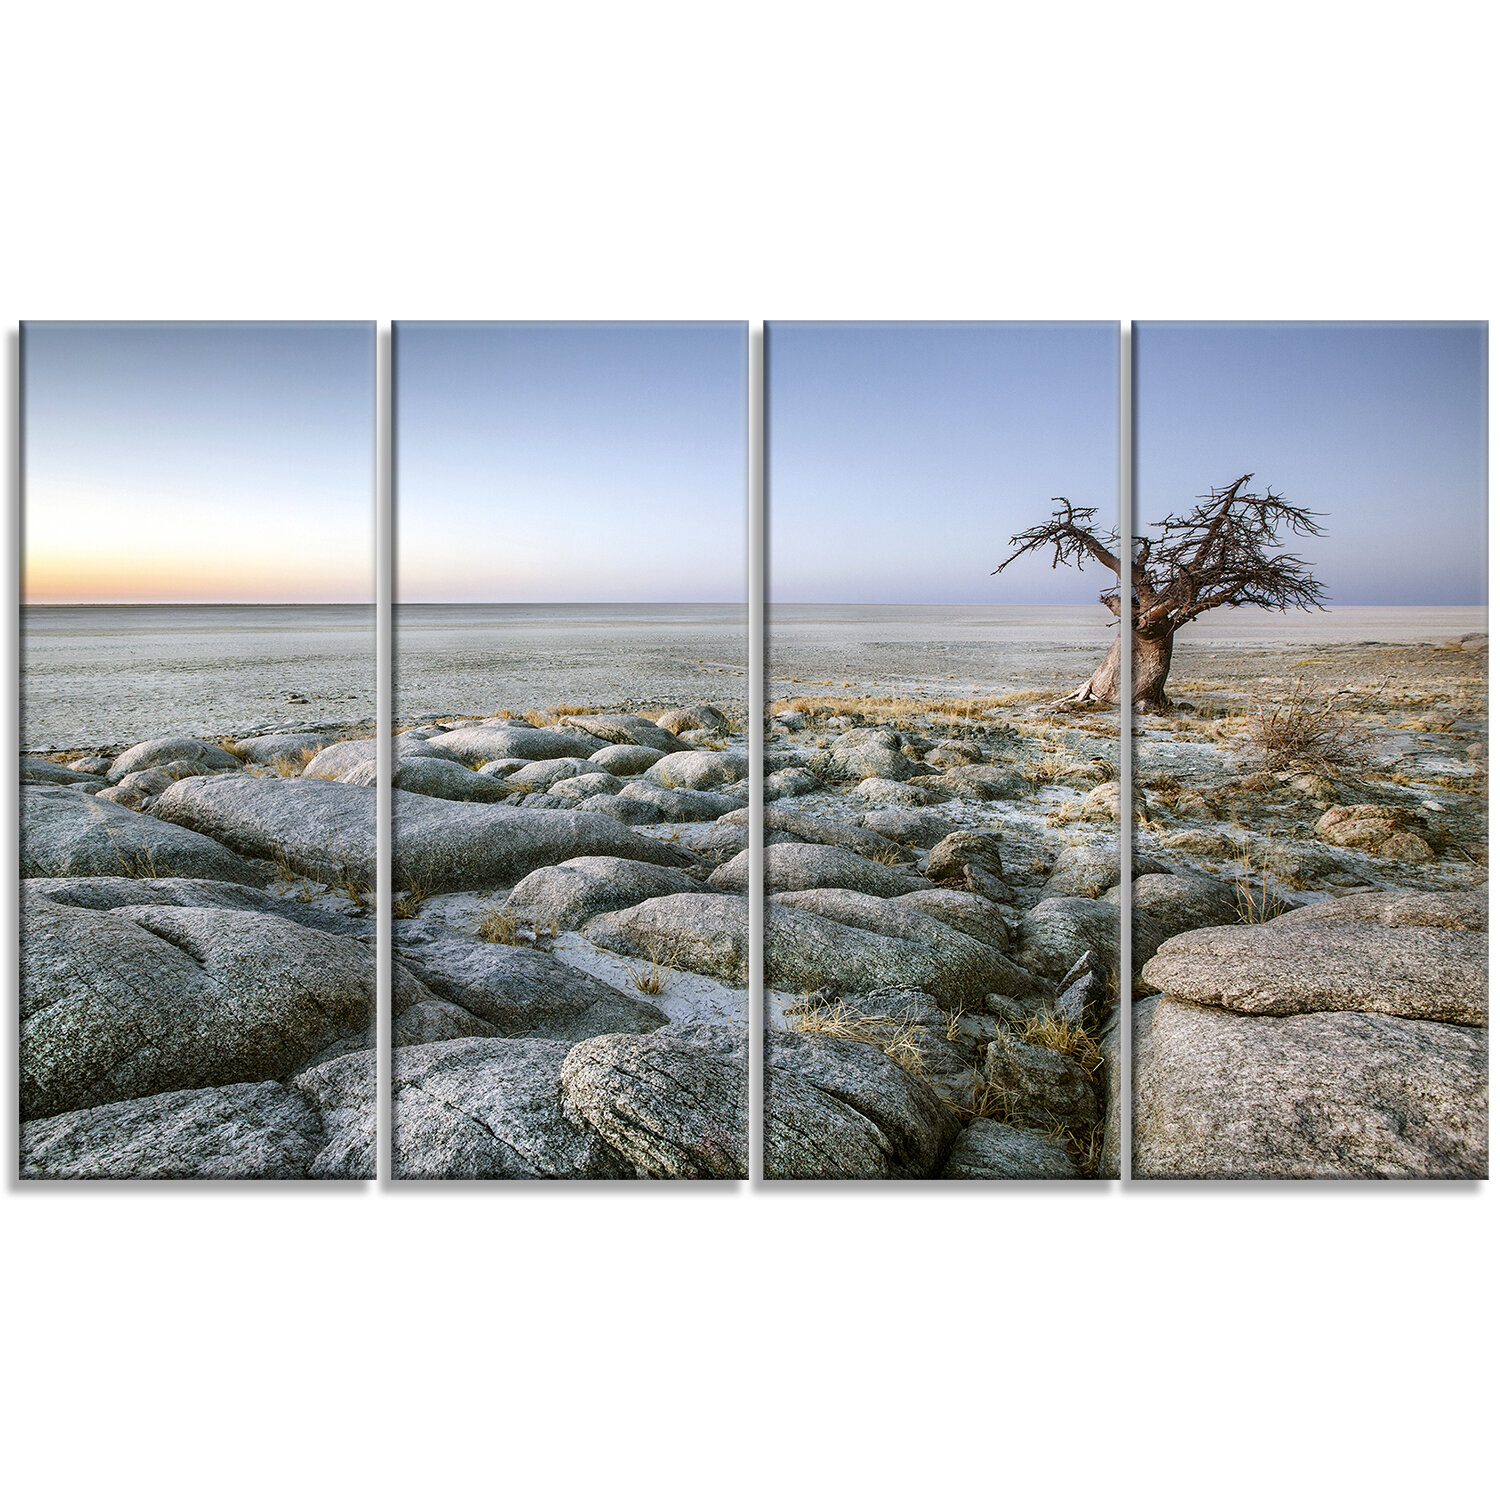 Designart Baobab Tree On Rocky Terrain 4 Piece Photographic Print On Wrapped Canvas Set Wayfair